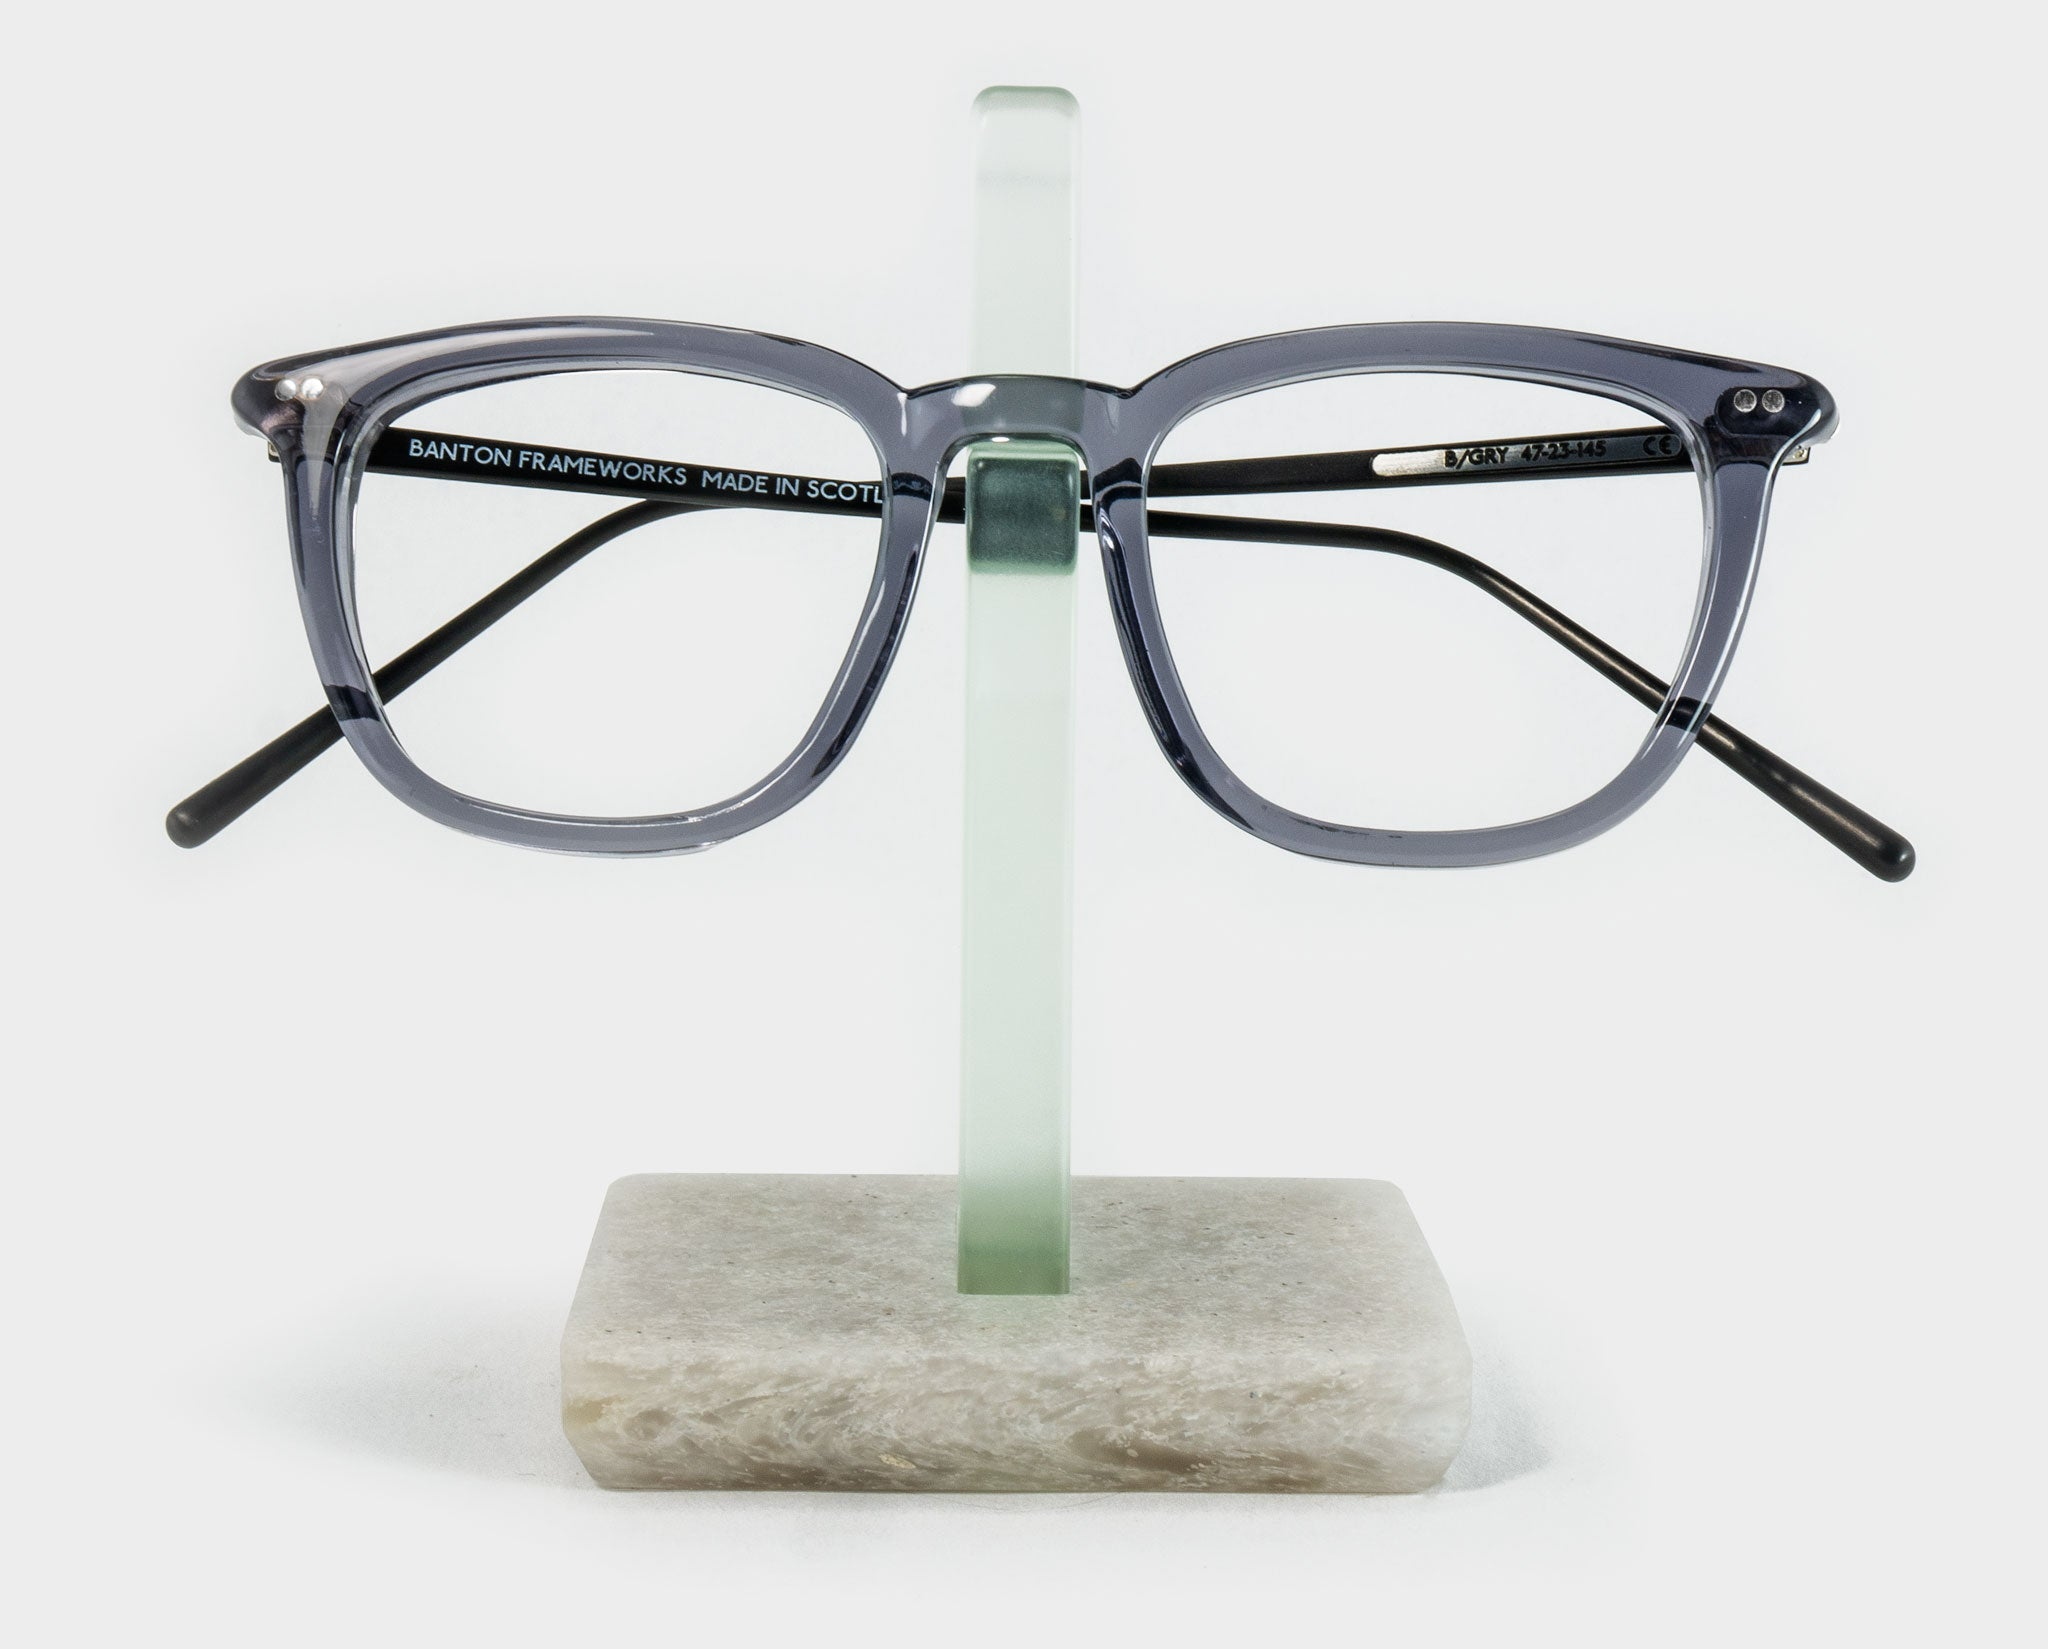 Green Spectacle Holder with glasses front view